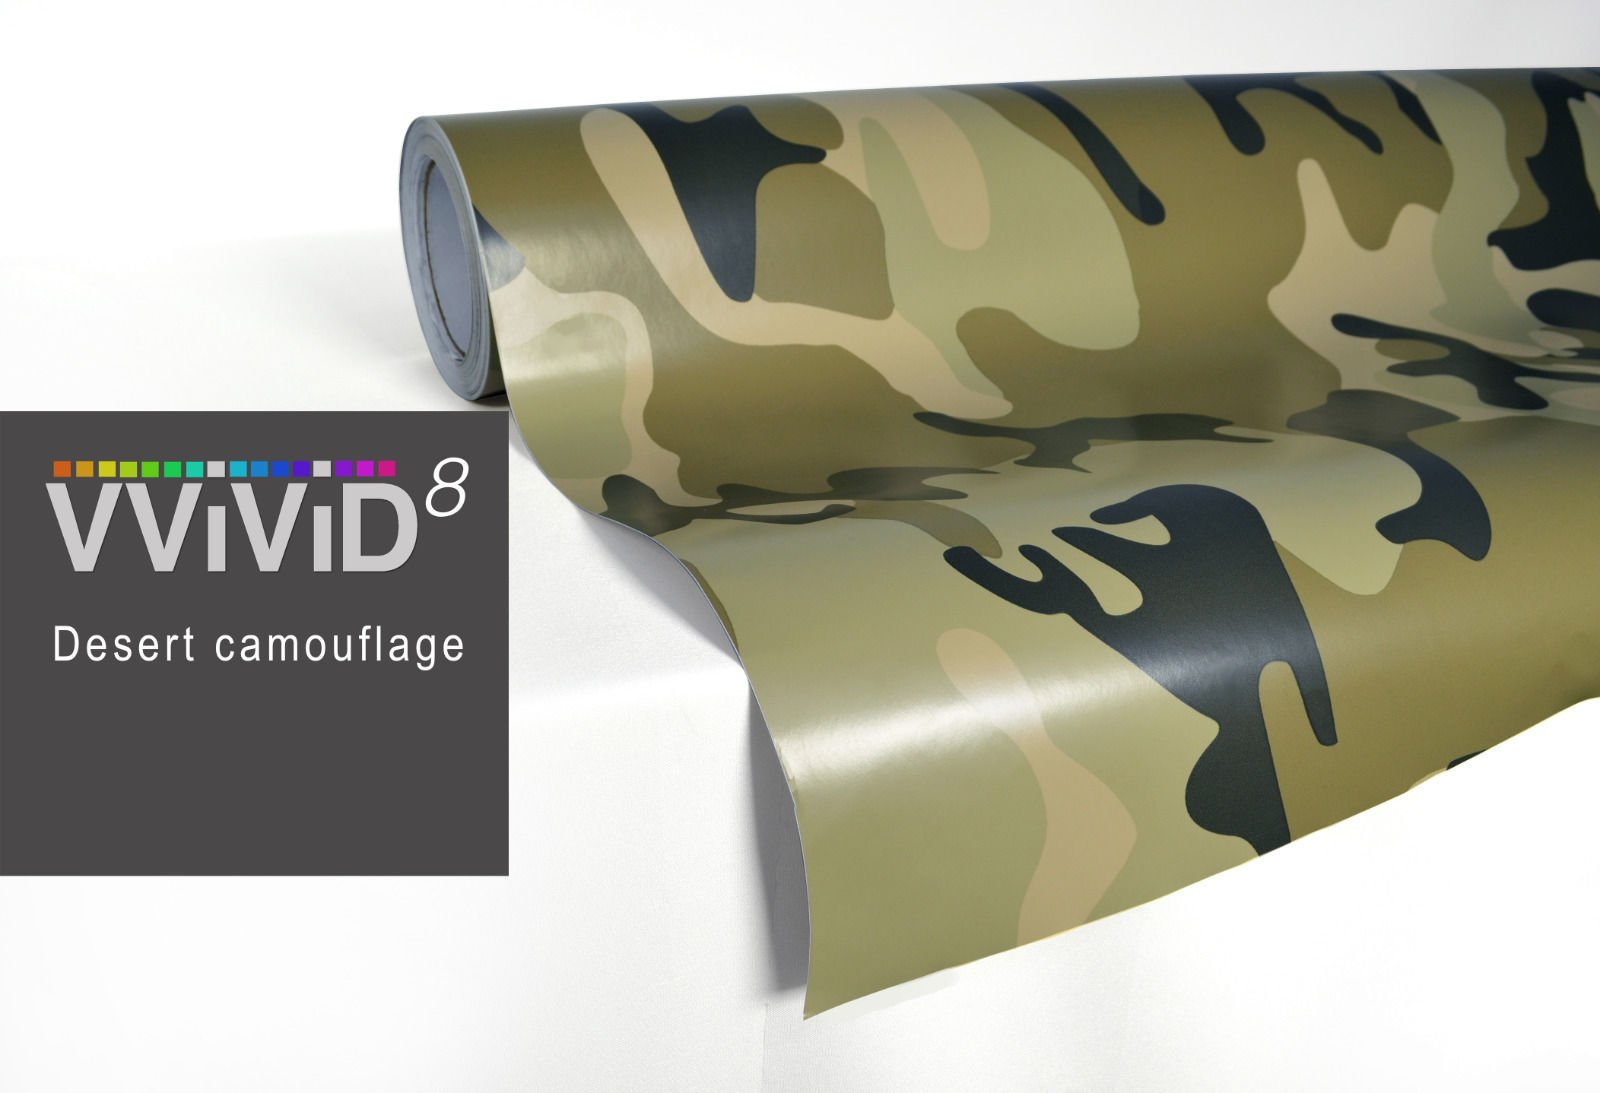 VViViD Woodland Camo vinyl car boat vehicle wrap 2ft x 5ft self adhesive stretch conform decal DIY VViViD Vinyls